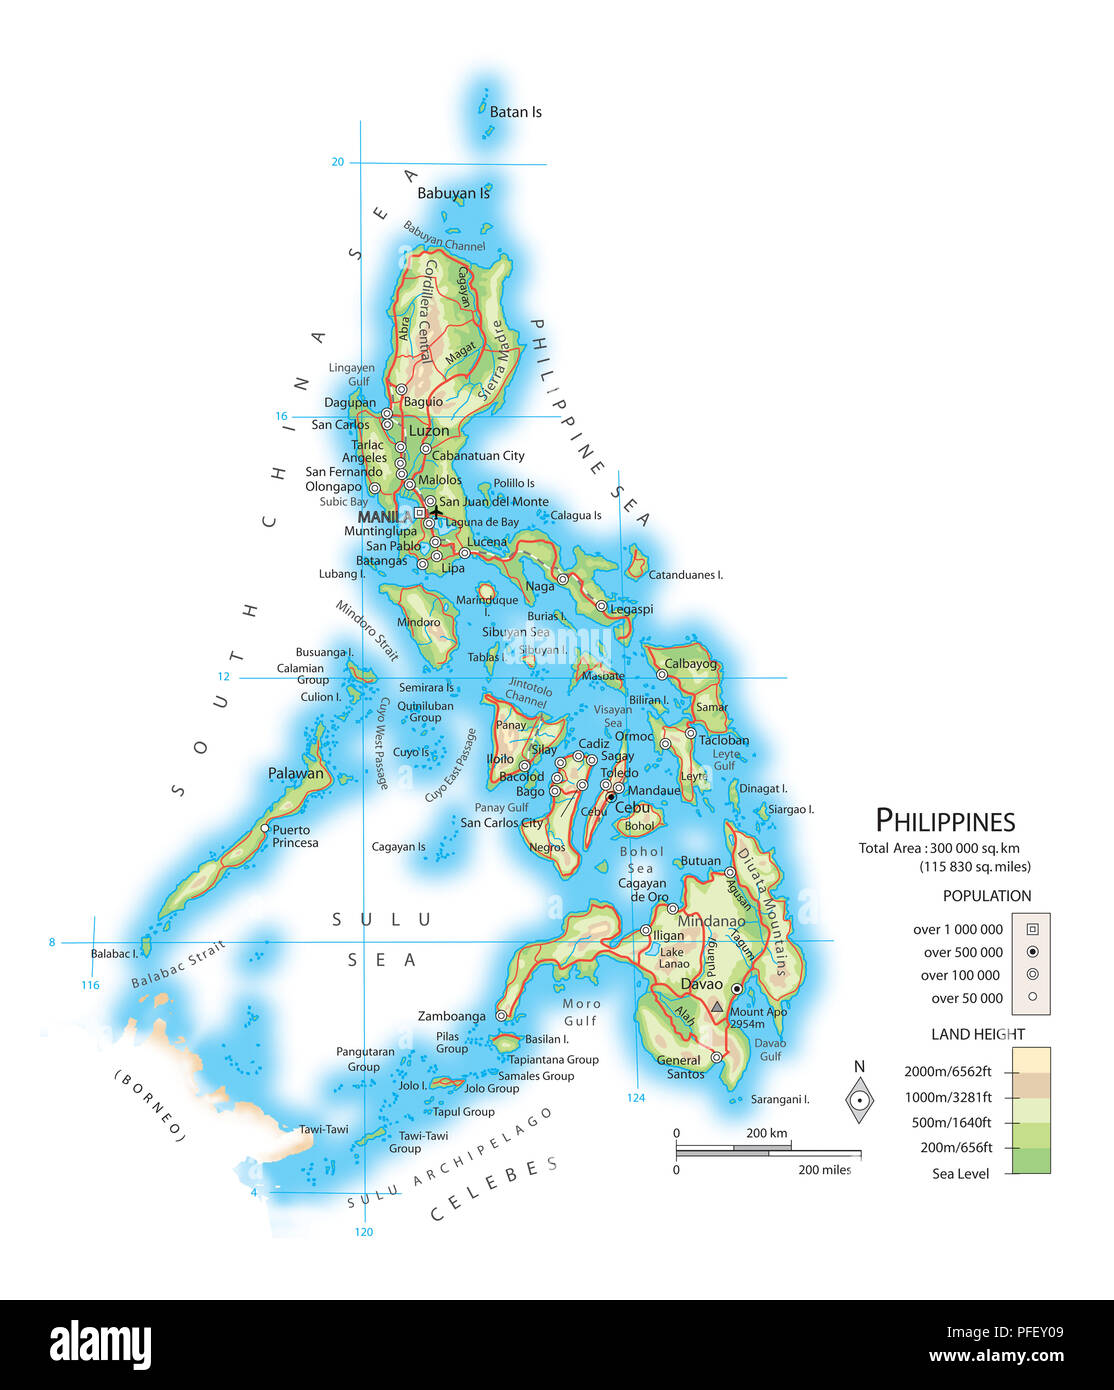 Map of the Philippines Stock Photo